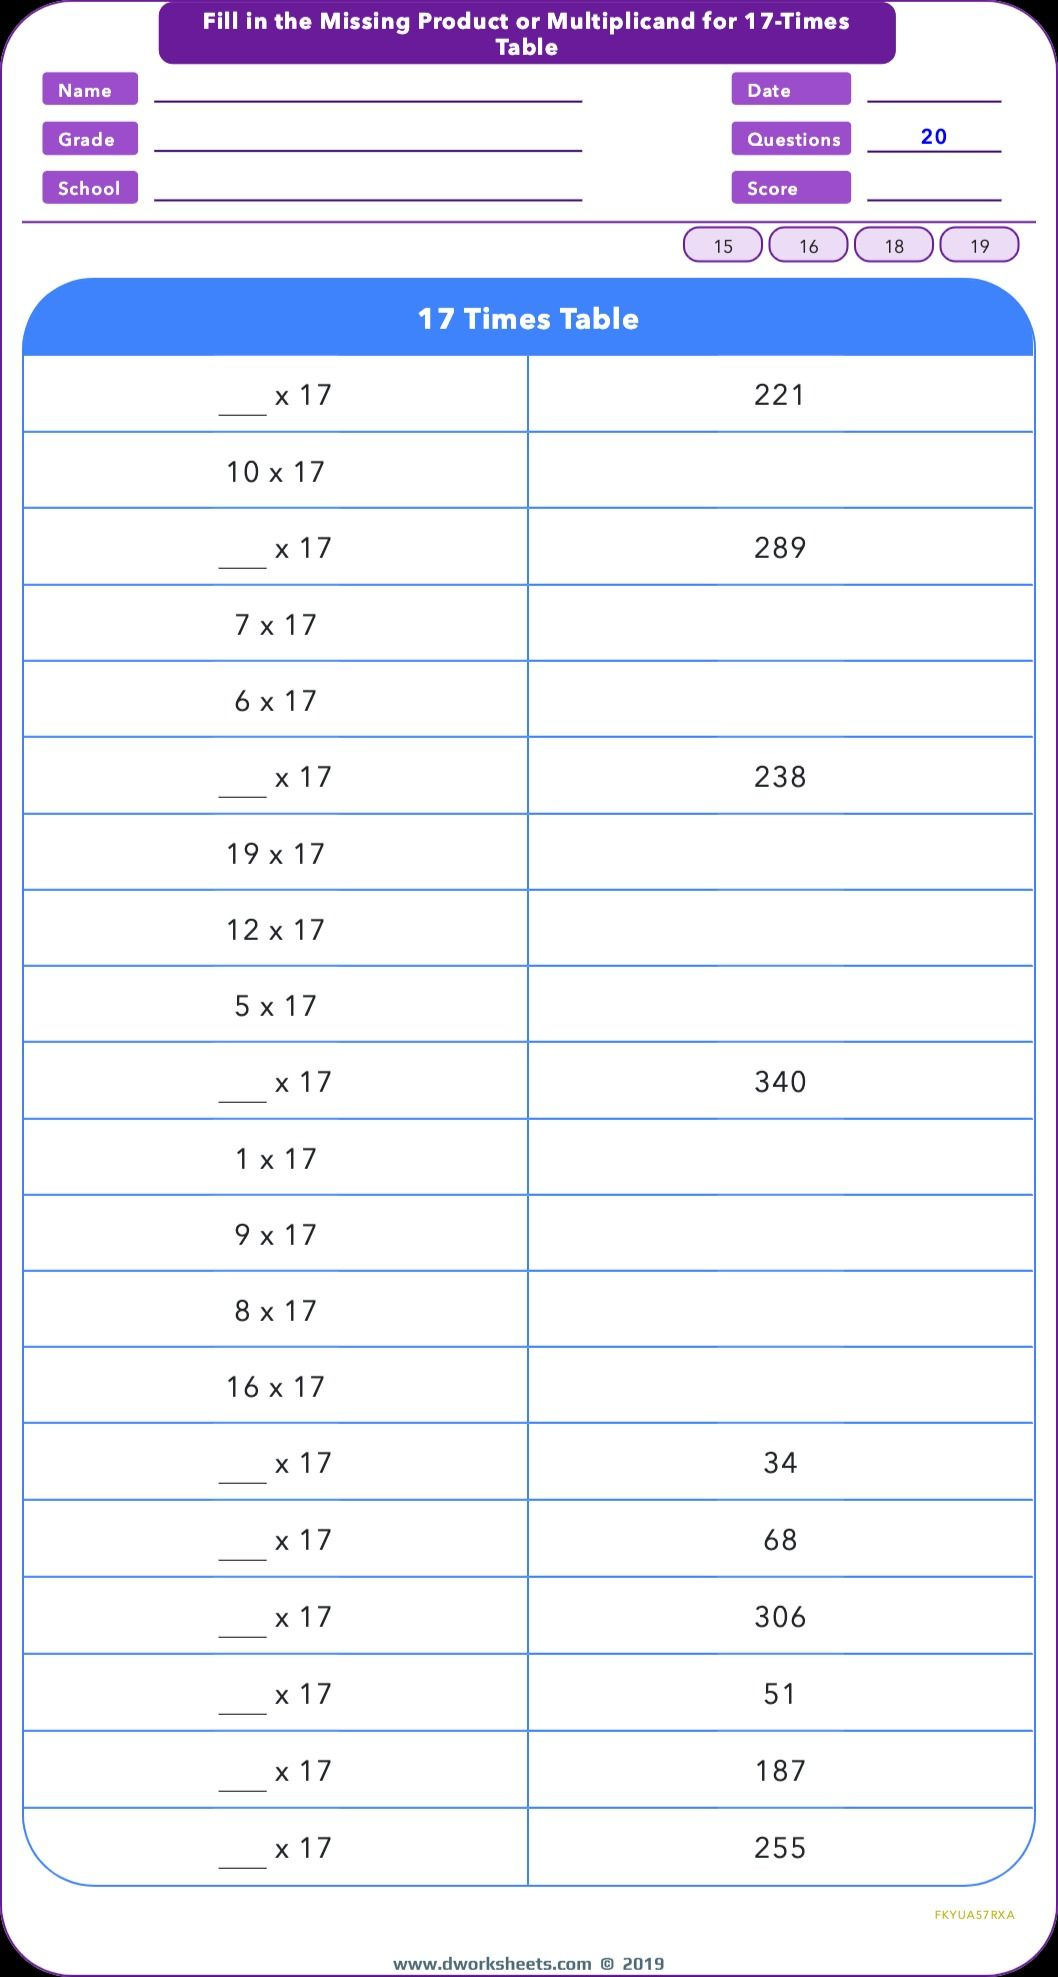 Practice 17 Times Table By Filling Missing Product Or